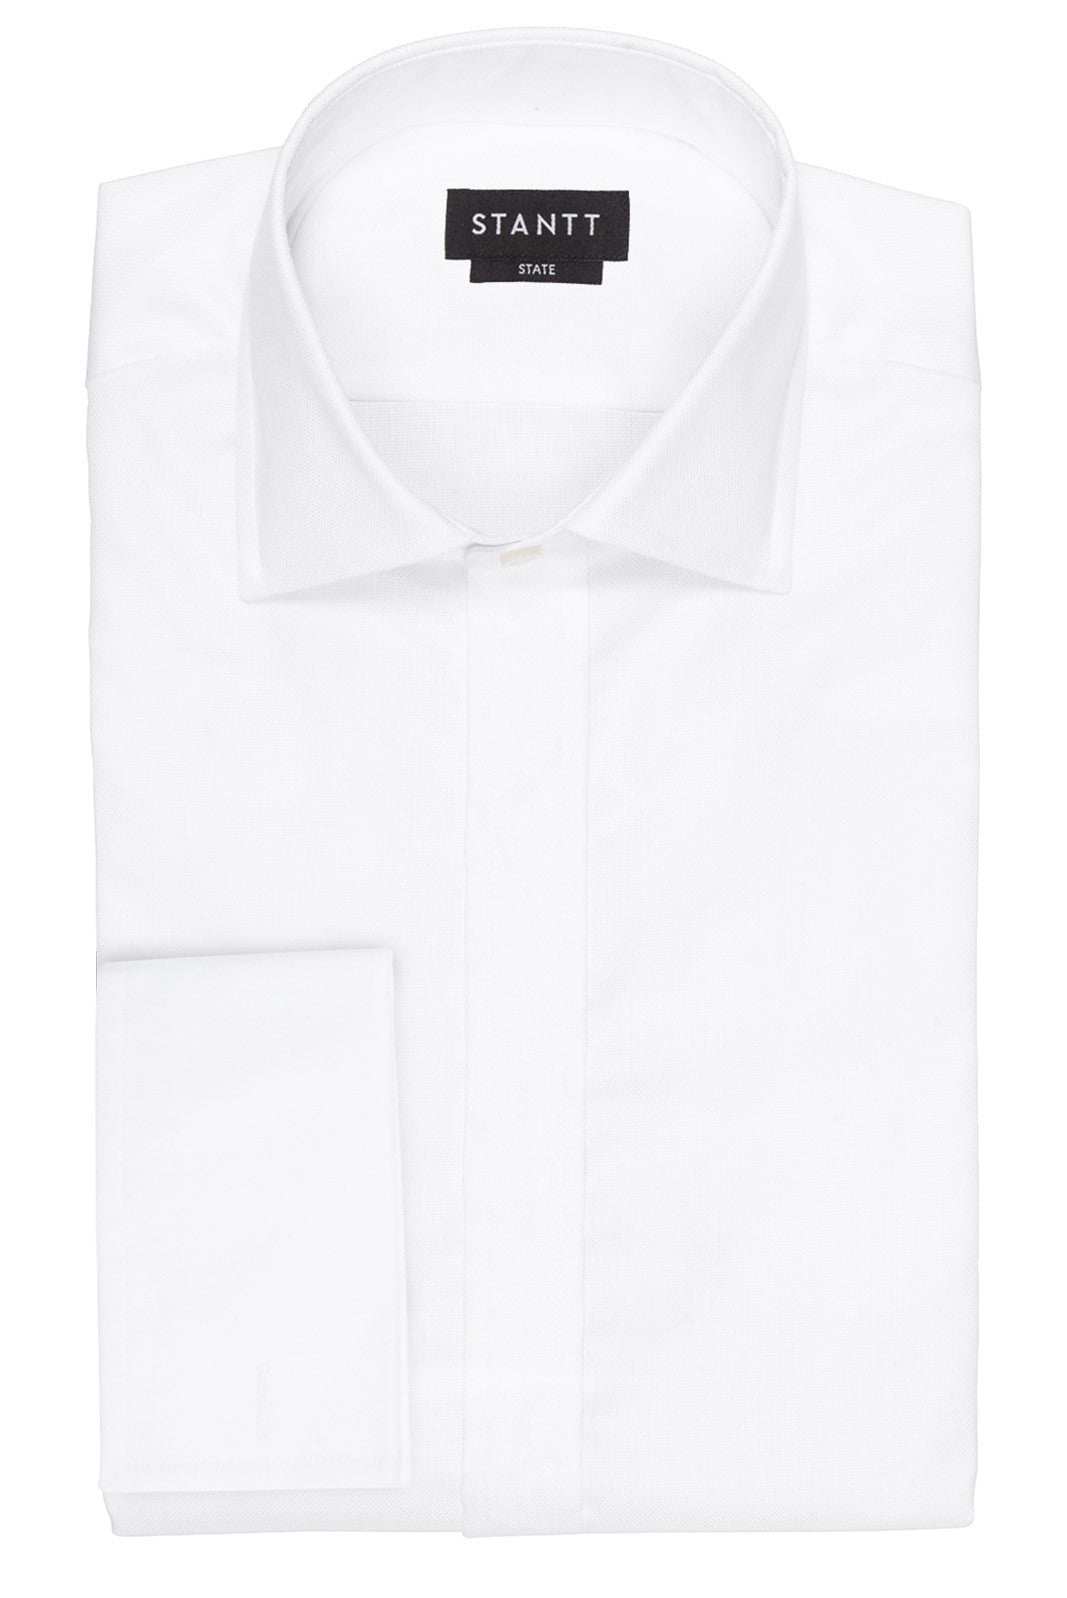 White Royal Oxford Formal Shirt: Modified-Spread Collar, Barrel Cuff, Hidden Placket